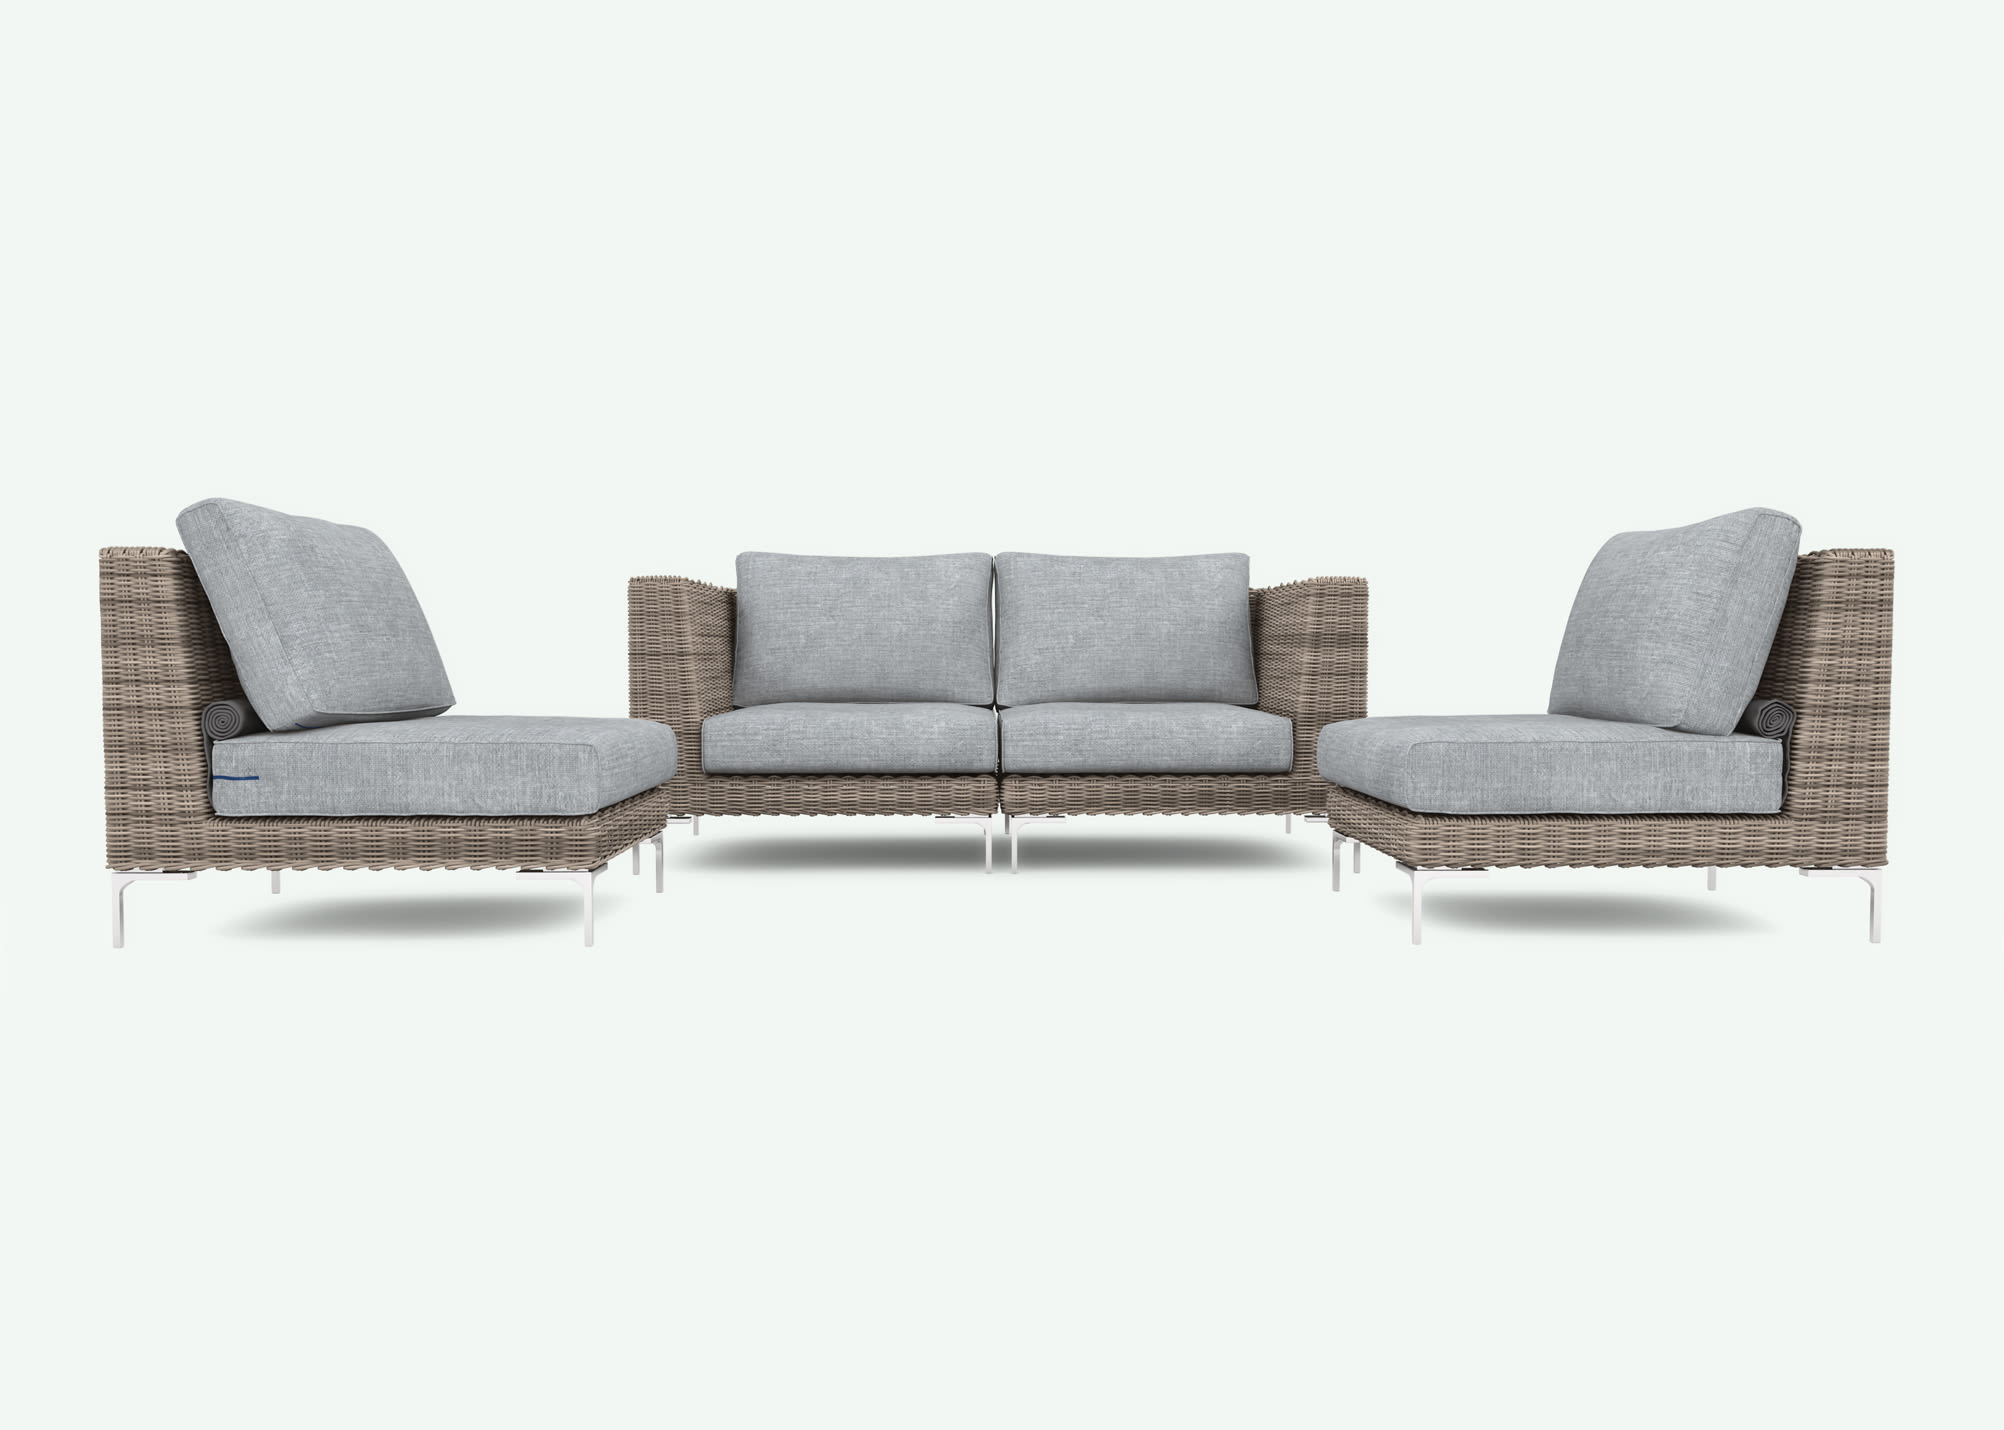 Miraculous Outer The Most Comfortable Durable Outdoor Sofa Home Interior And Landscaping Ologienasavecom